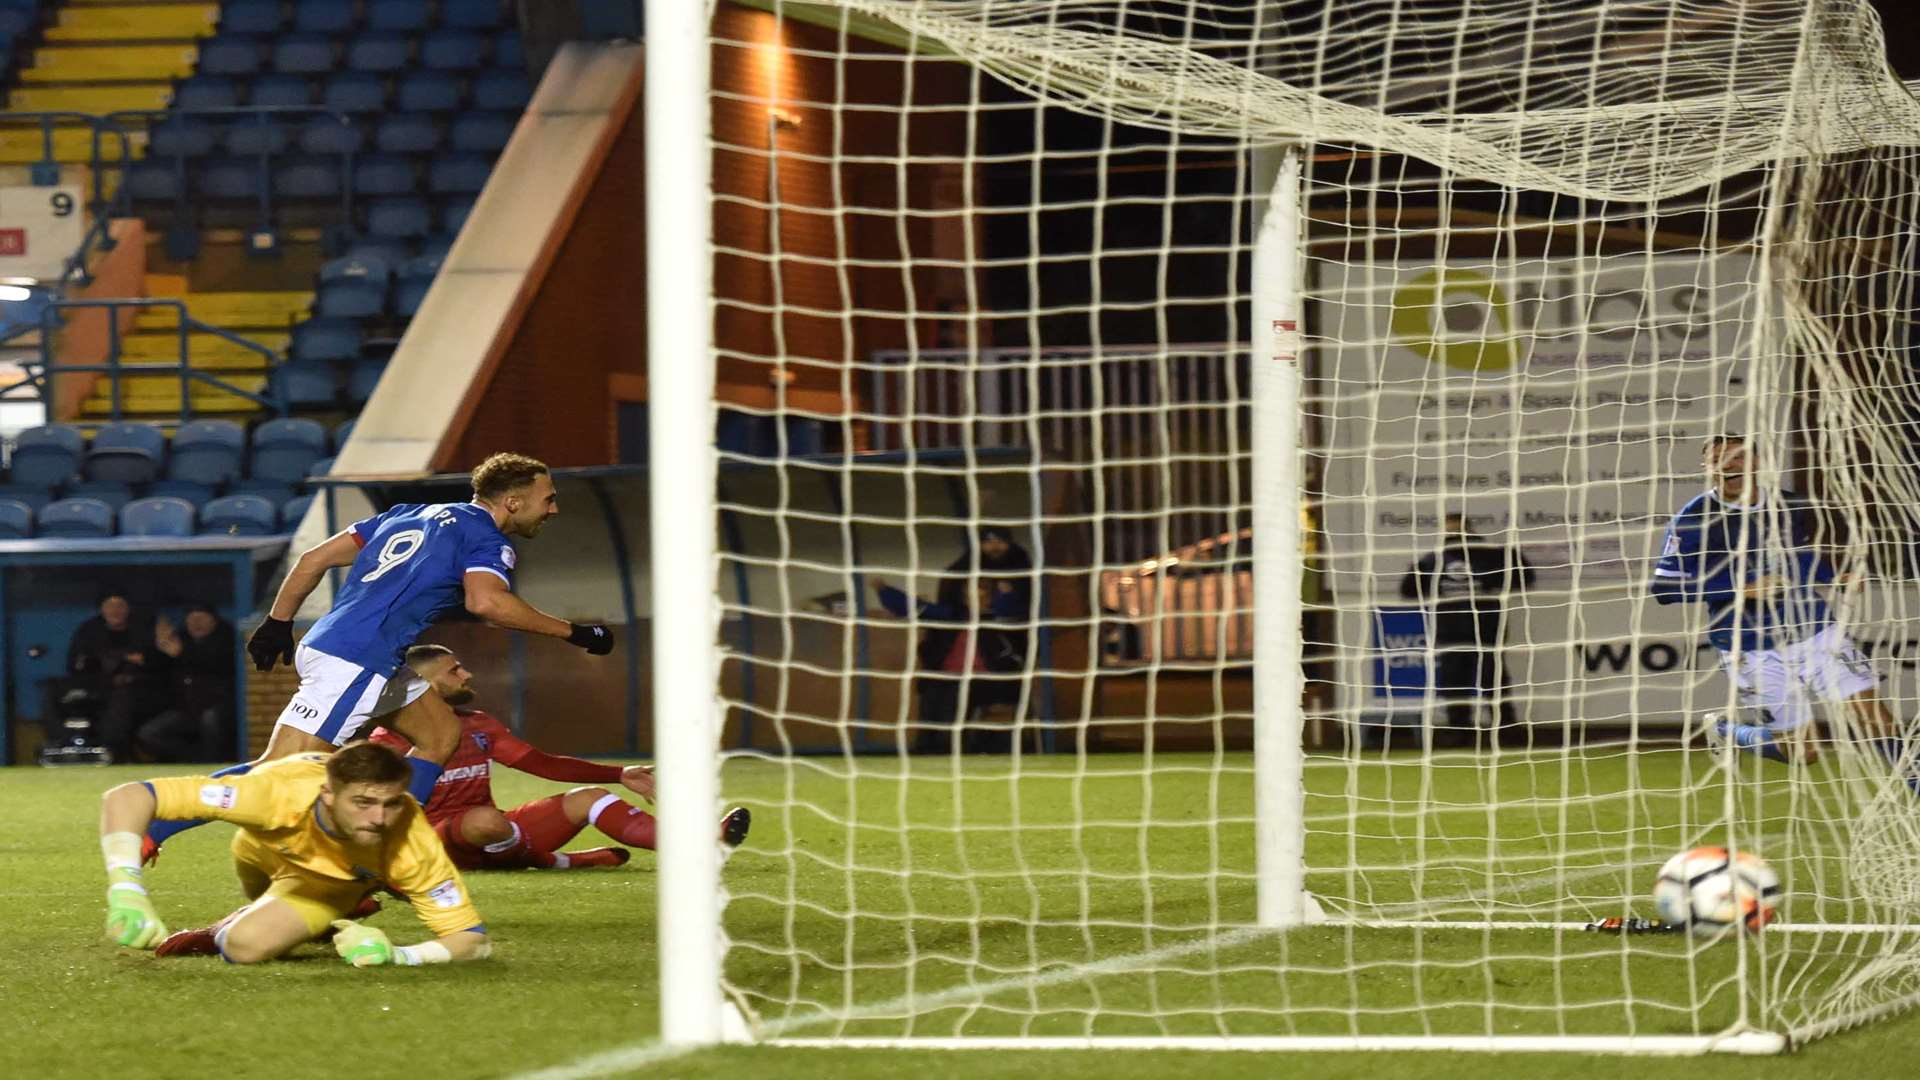 Gills keeper Tomas Holy can only watch on as Hallam Hope scores for Carlisle. Picture: Stuart Walker